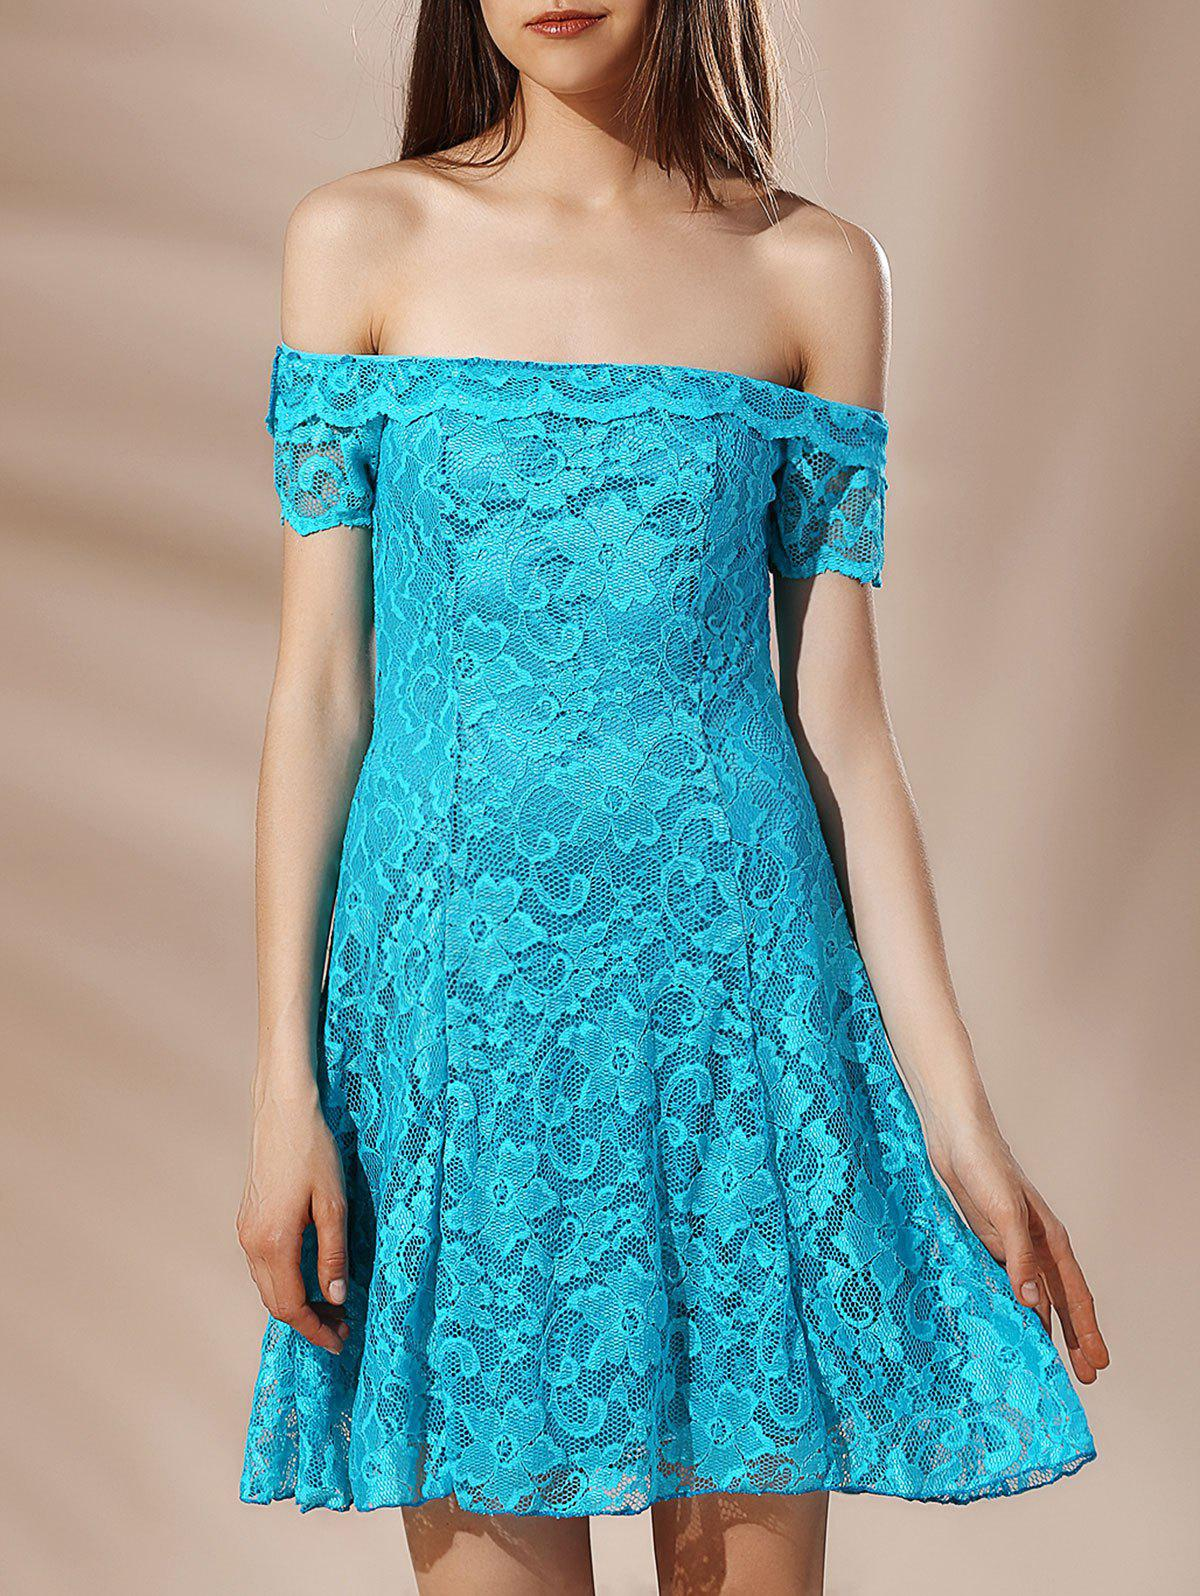 Alluring Women's Off-The-Shoulder Solid Color Lace Crochet Dress - LAKE BLUE L